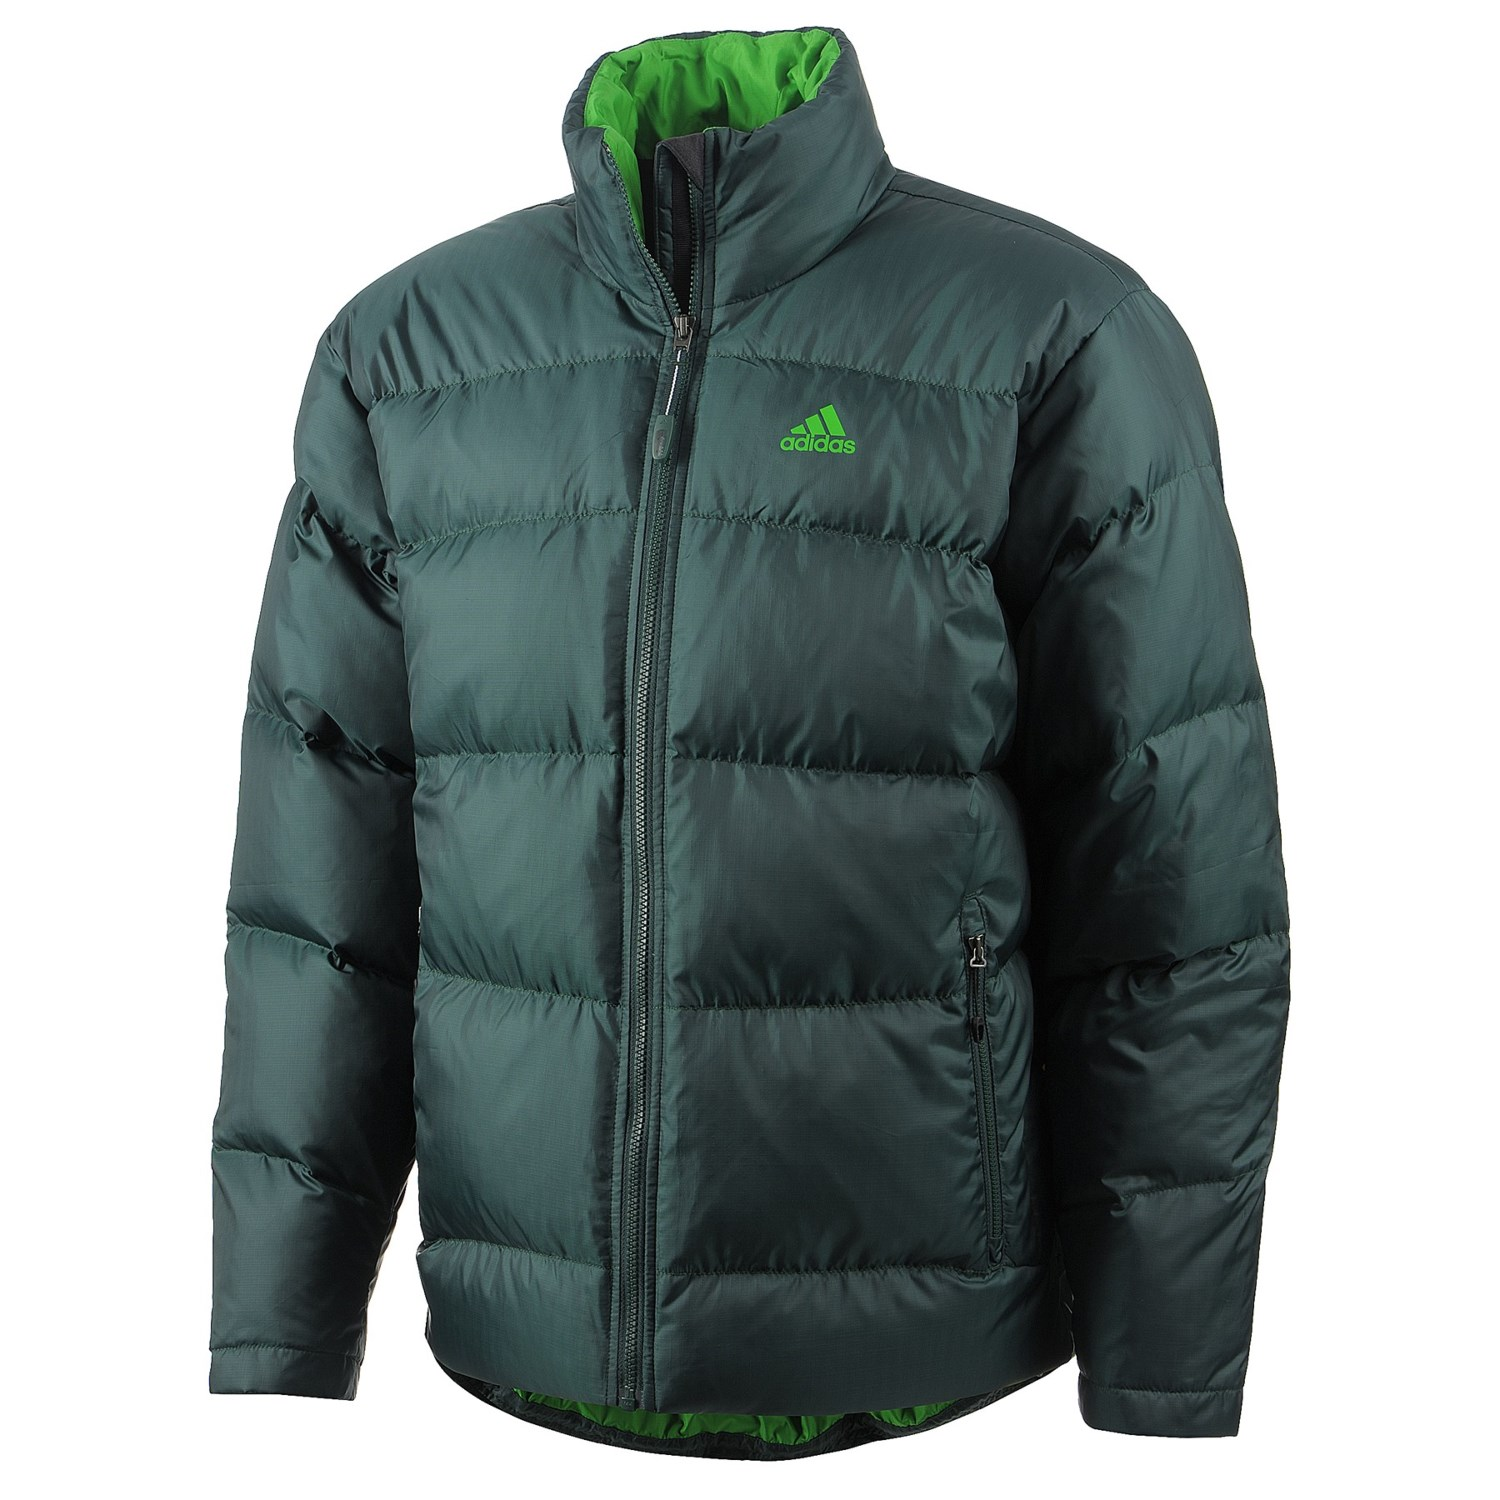 styles of Men's Down & Insulated Jackets from Marmot, The North Face, Helly Hansen, and more at Sierra Trading Post. Jackets & Coats Winter Boots Sweaters Hats, Gloves & Scarves Modi Down Jacket - Fill Power (For Men) $ Compare at $